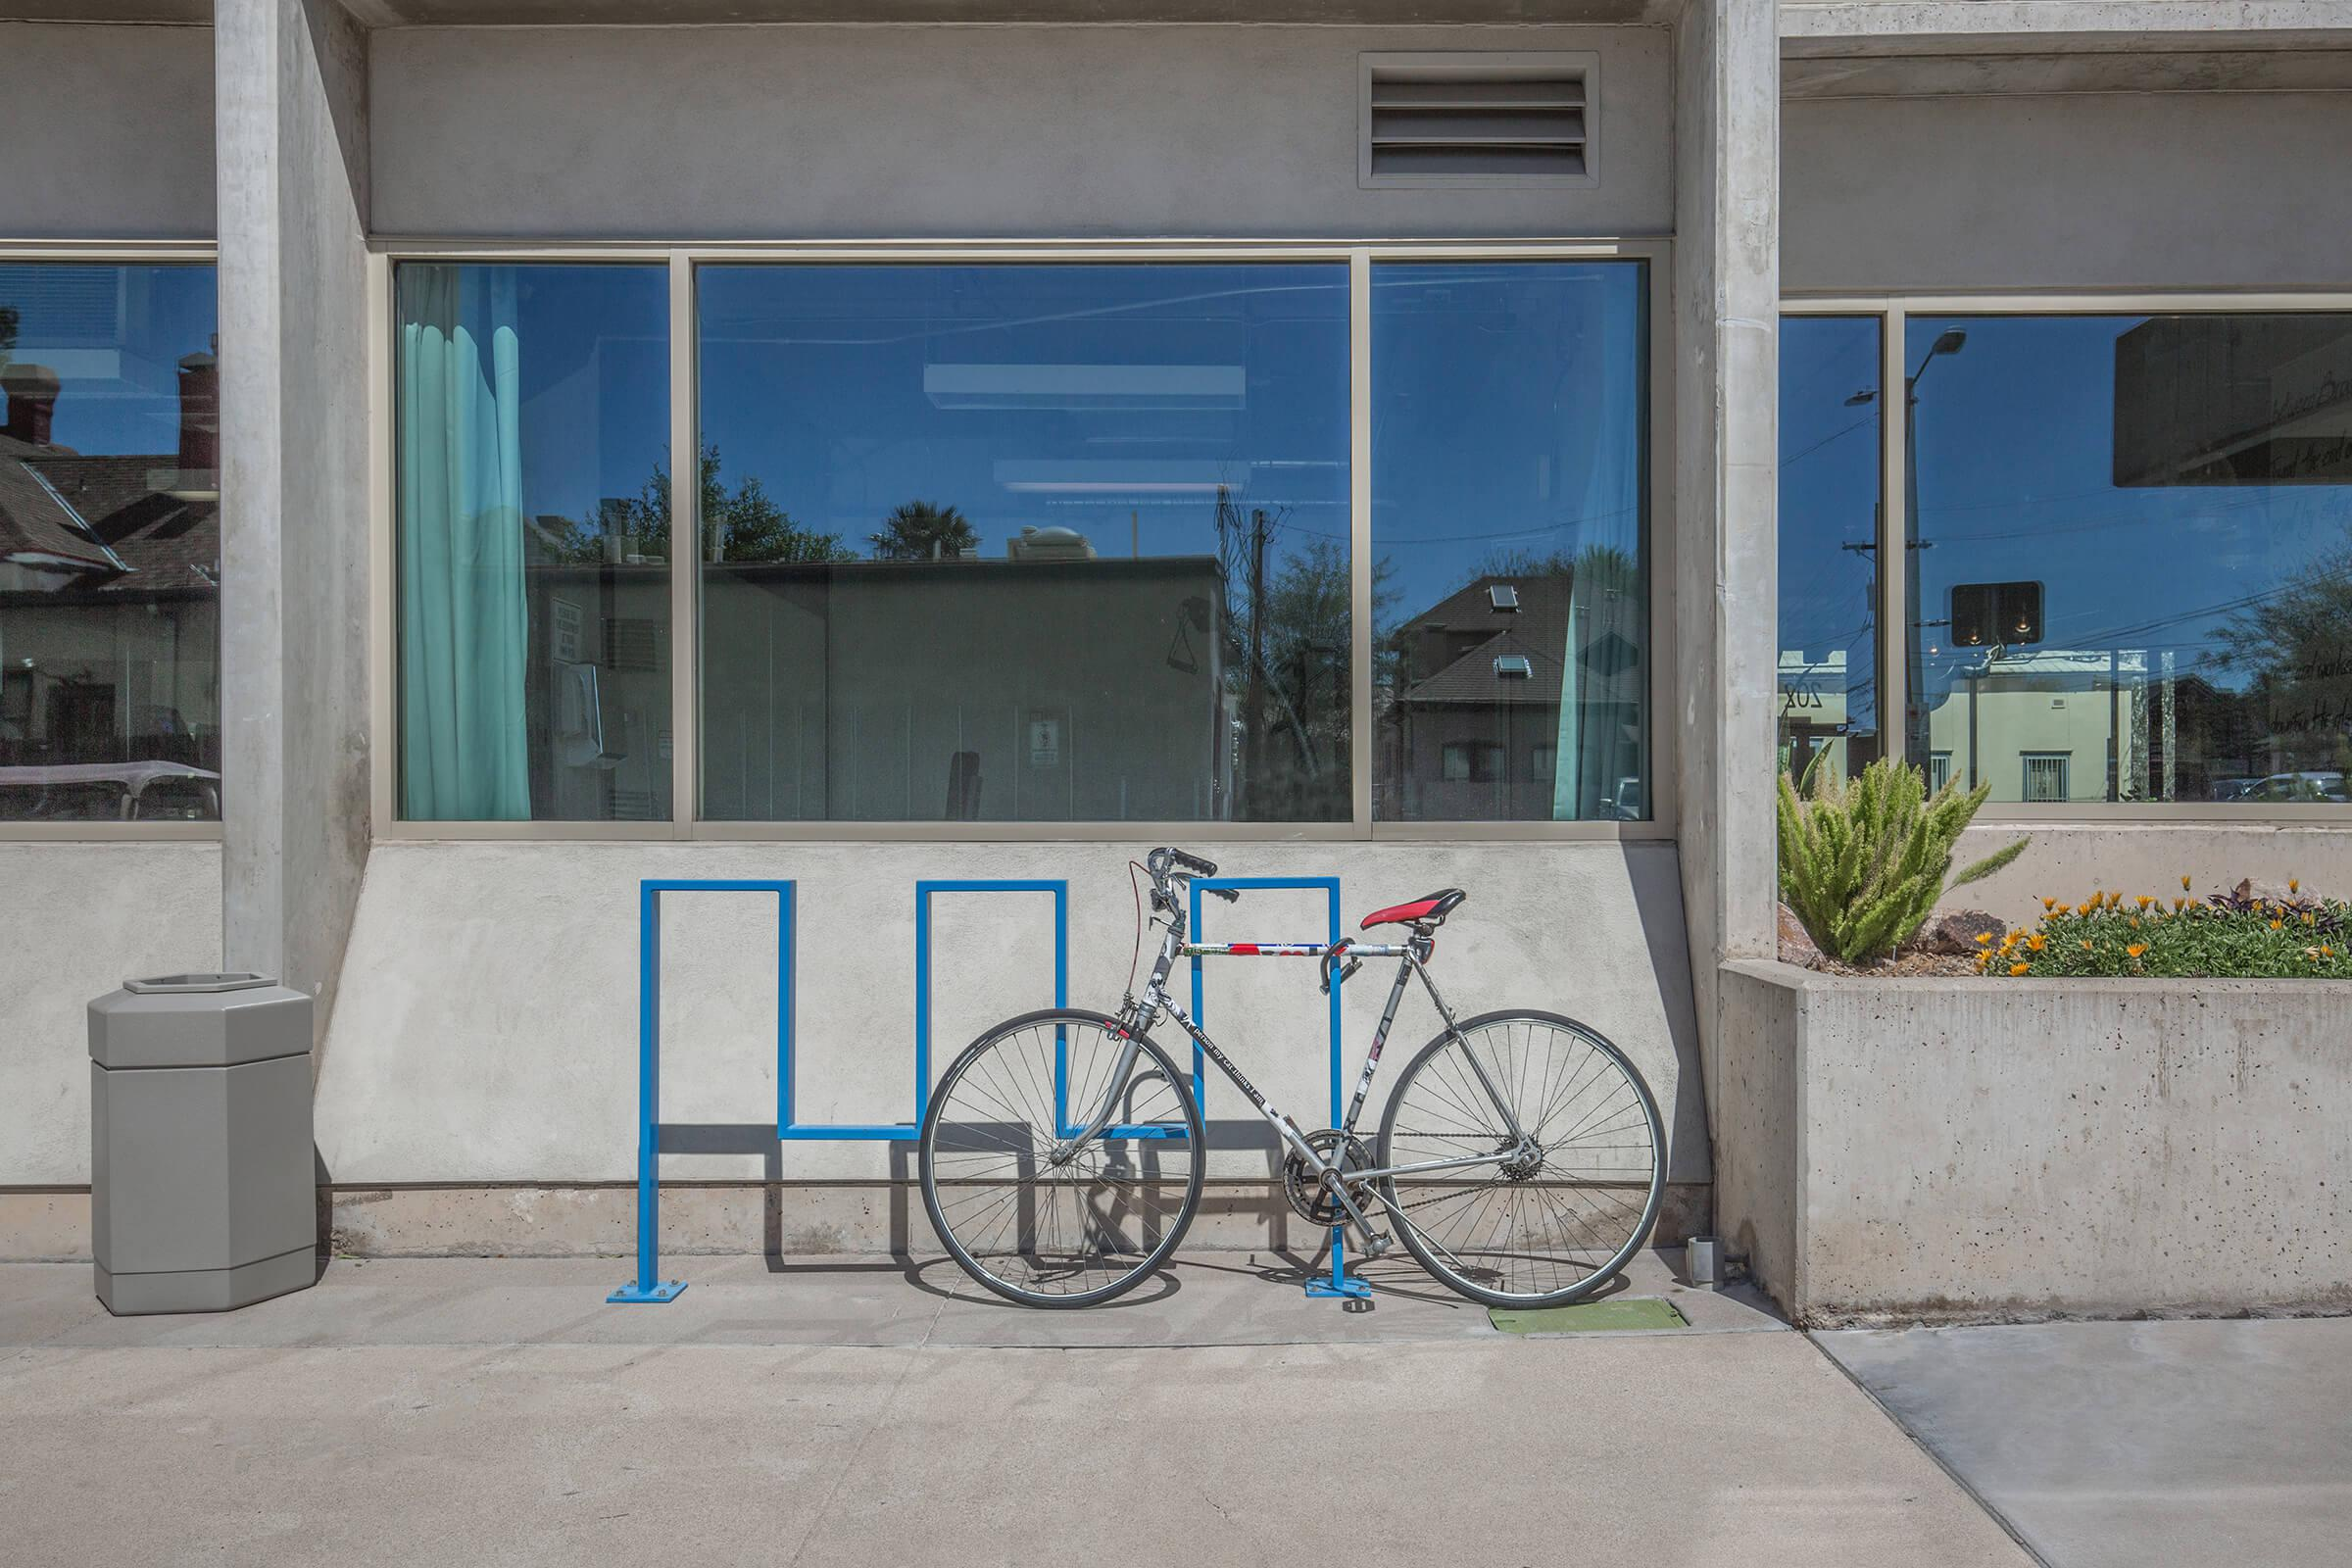 a bicycle parked in front of a building